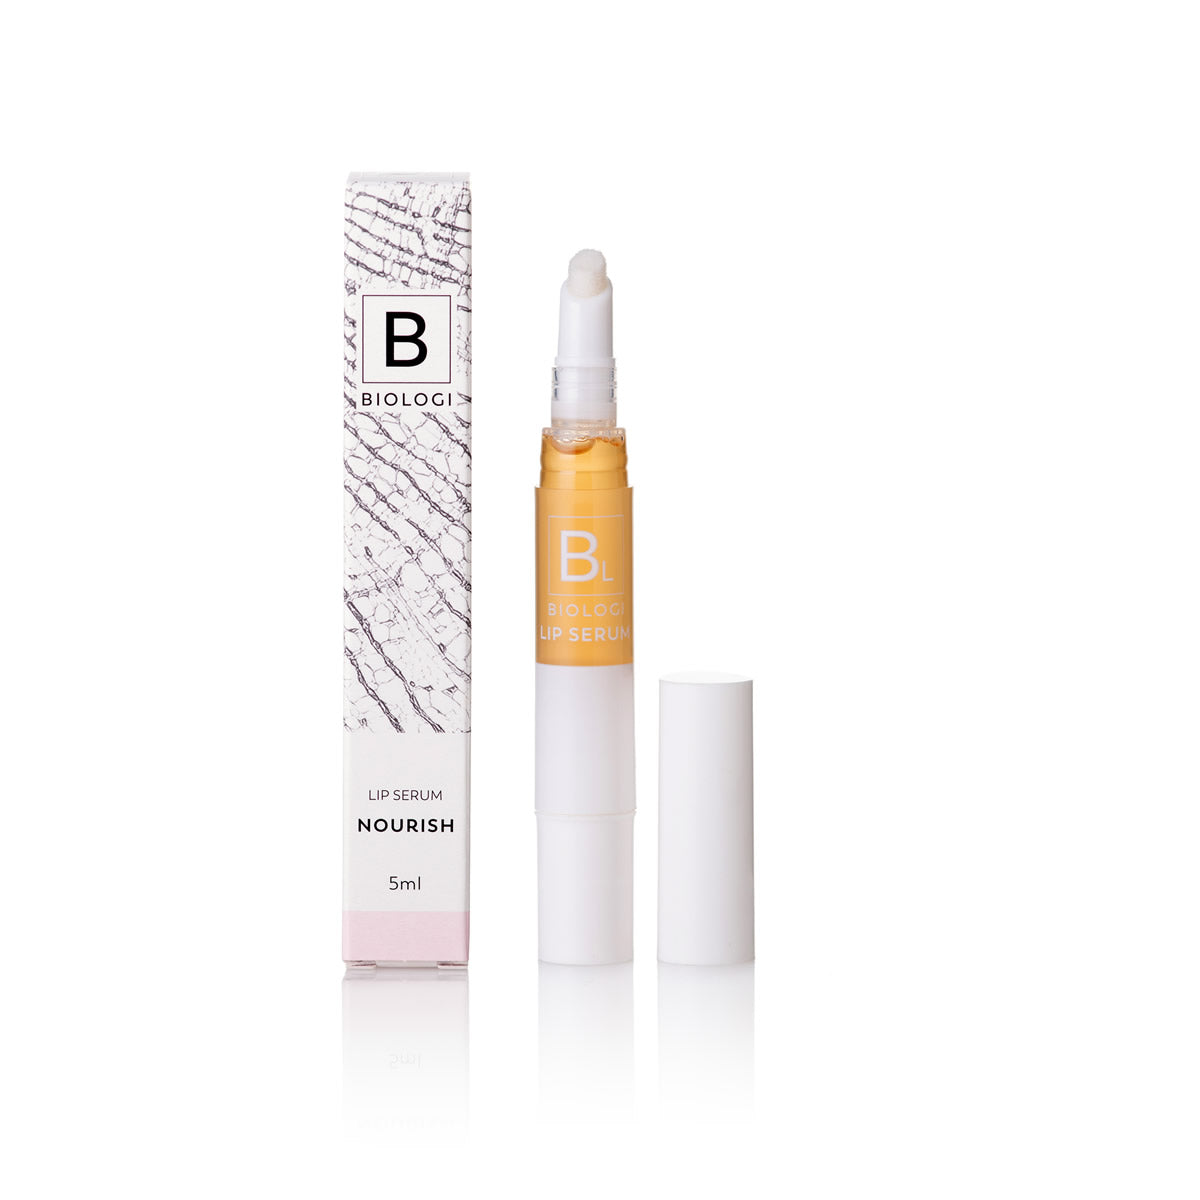 Biologi BL Nourish Lip Serum Packaging